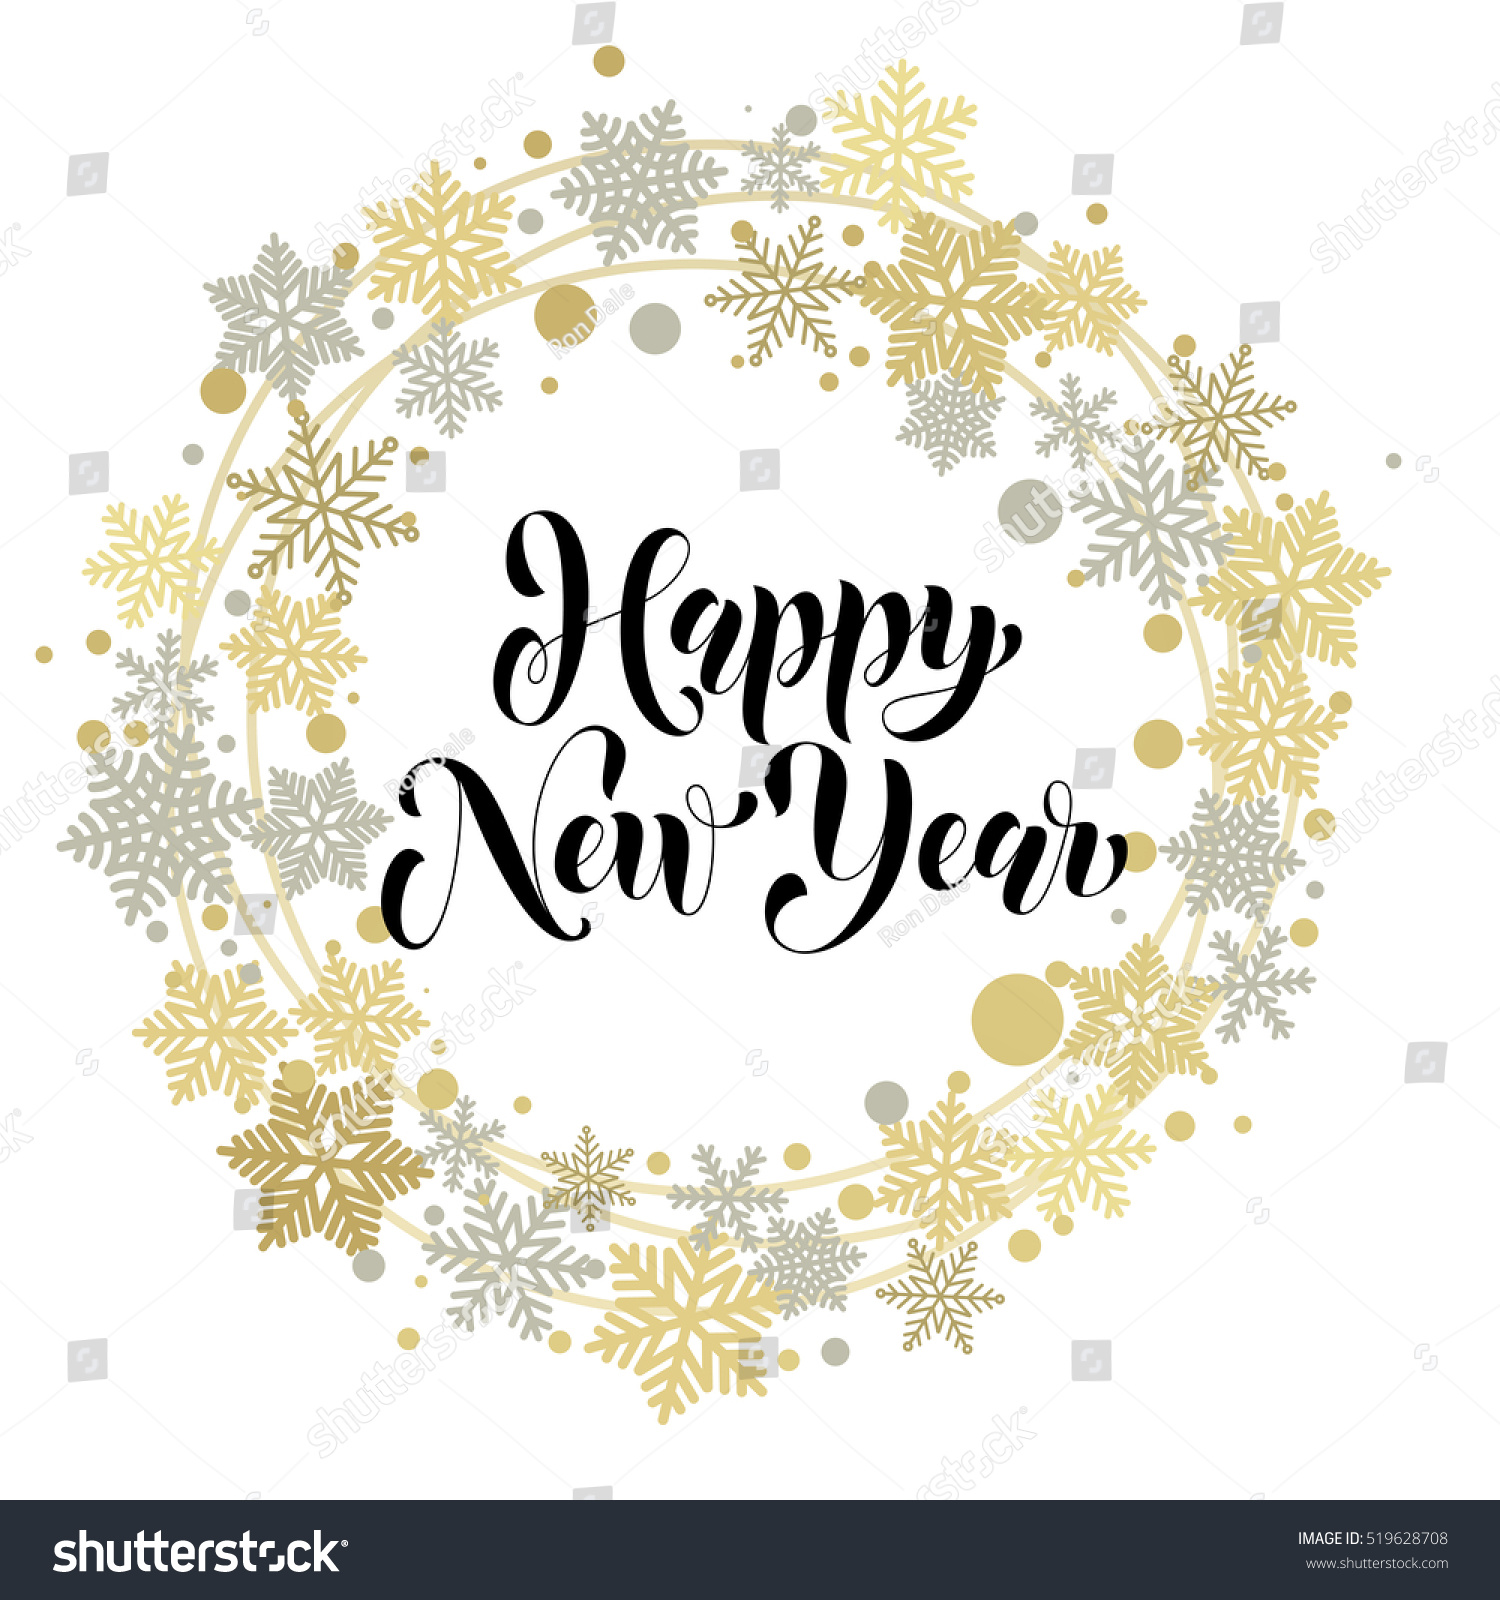 Happy New Year Text Greeting Card Stock Vector 519628708 ...